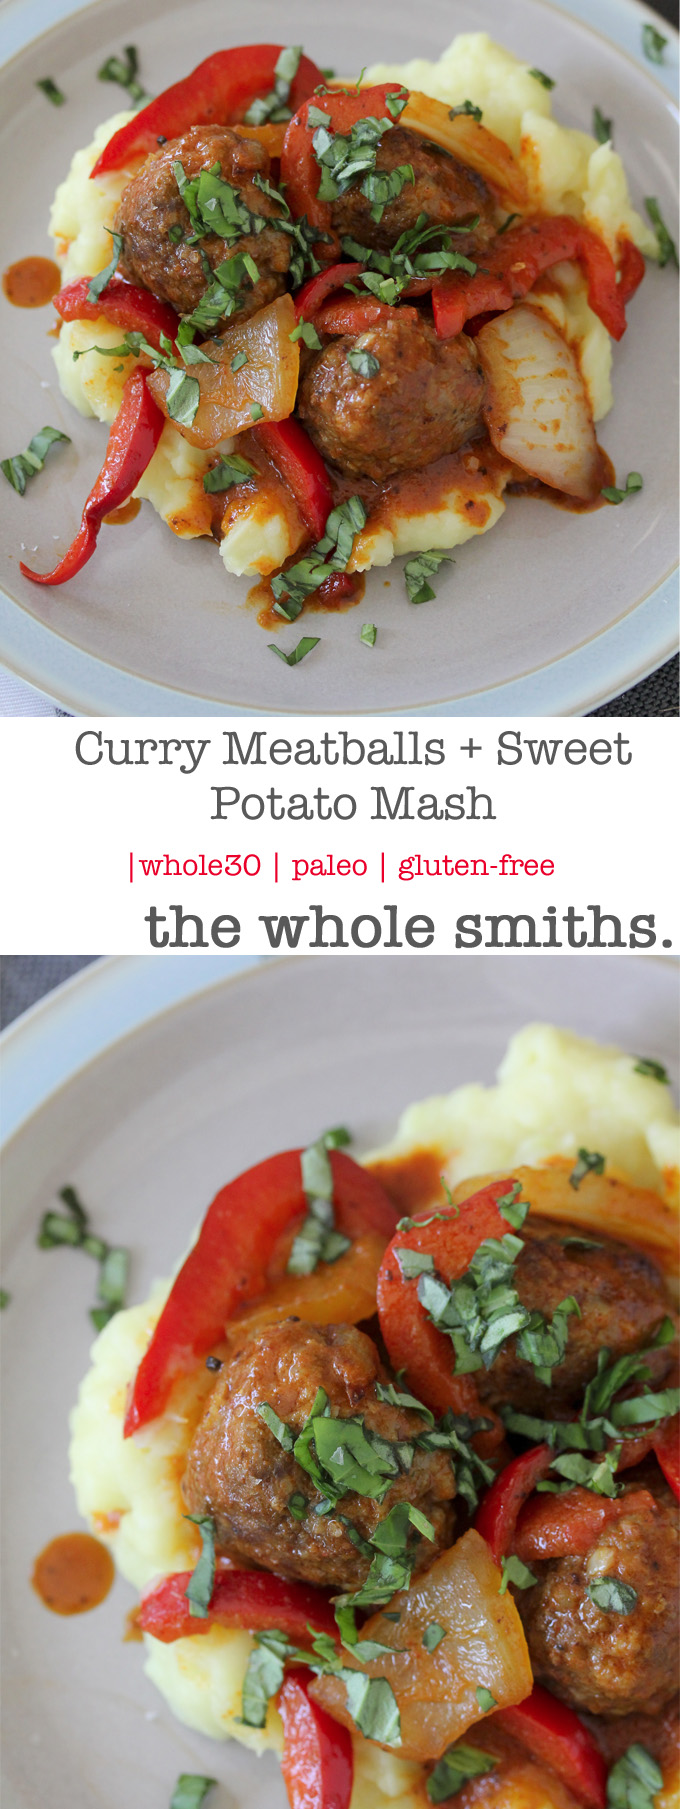 Whole30 compliant Curry Meatballs + Sweet Potato Mash. Paleo and gluten-free.